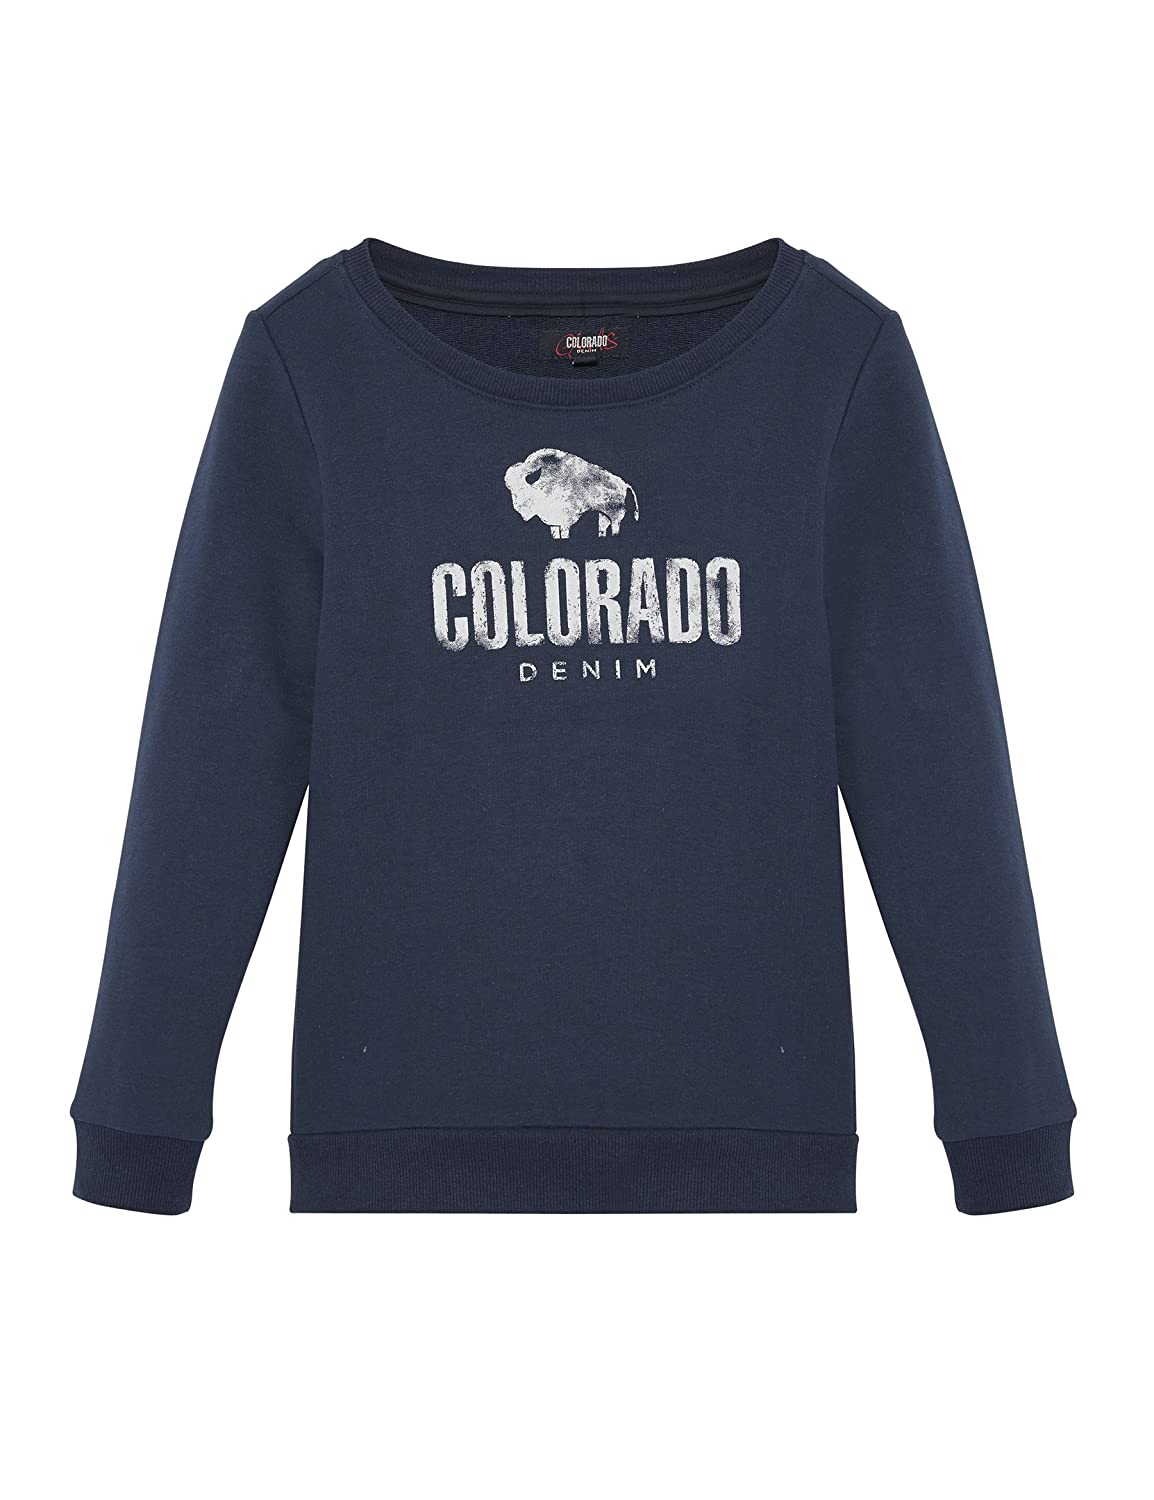 Colorado Denim Enna, Felpa Bambina 12685-004